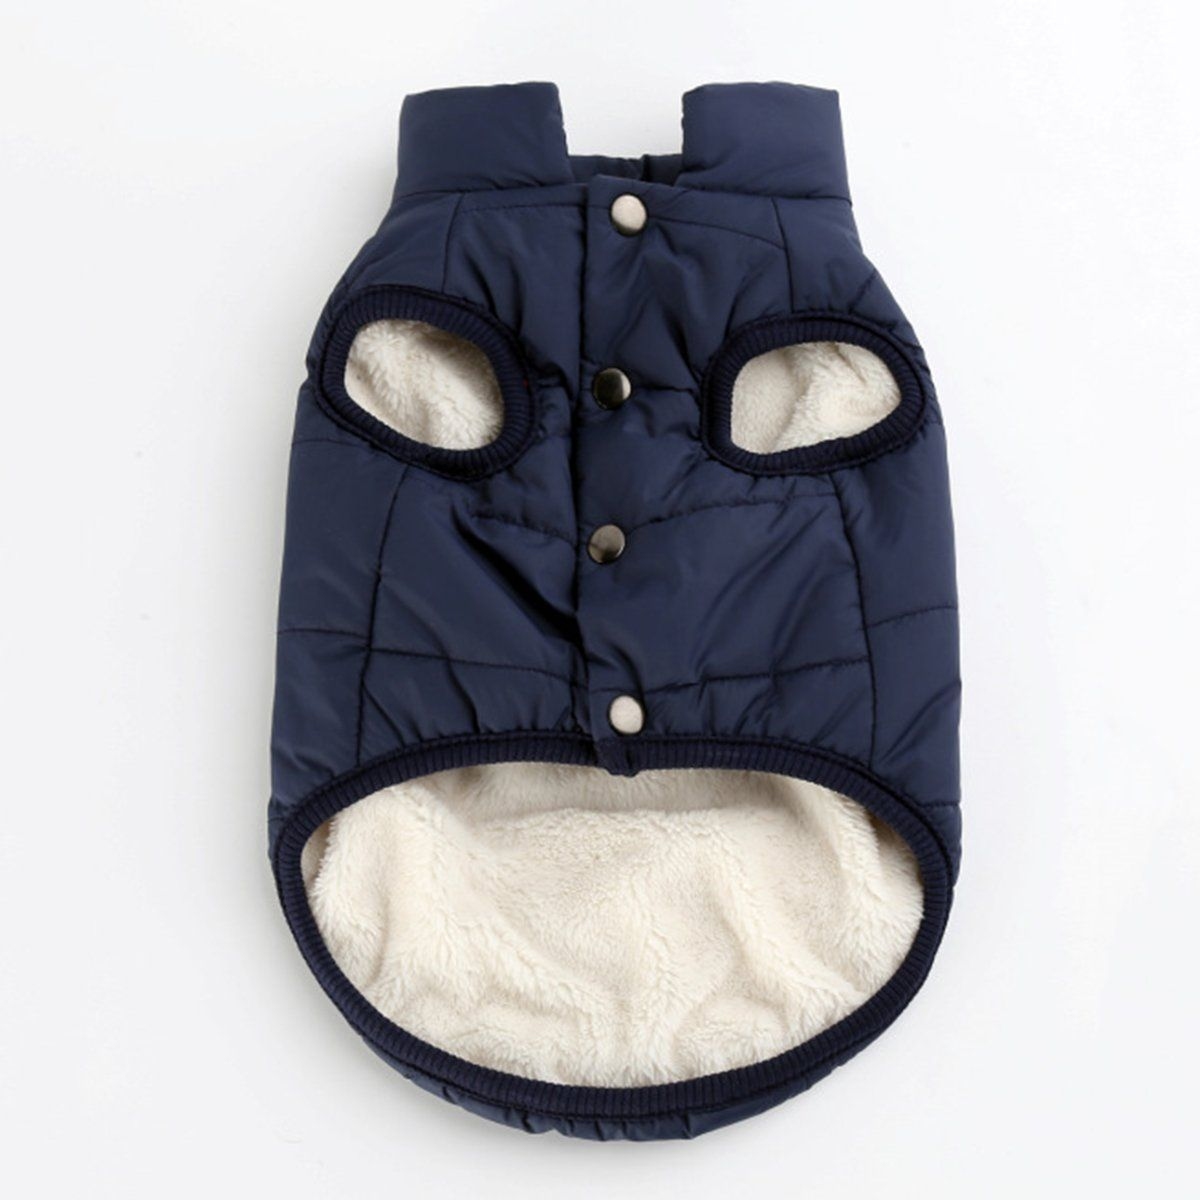 Uheng Pet Dog Cat Jacket Waterproof Windproof Warm Winter Coat You Can Get More Details By Clicking On The Image Puppy Clothes Dog Winter Clothes Dog Coats